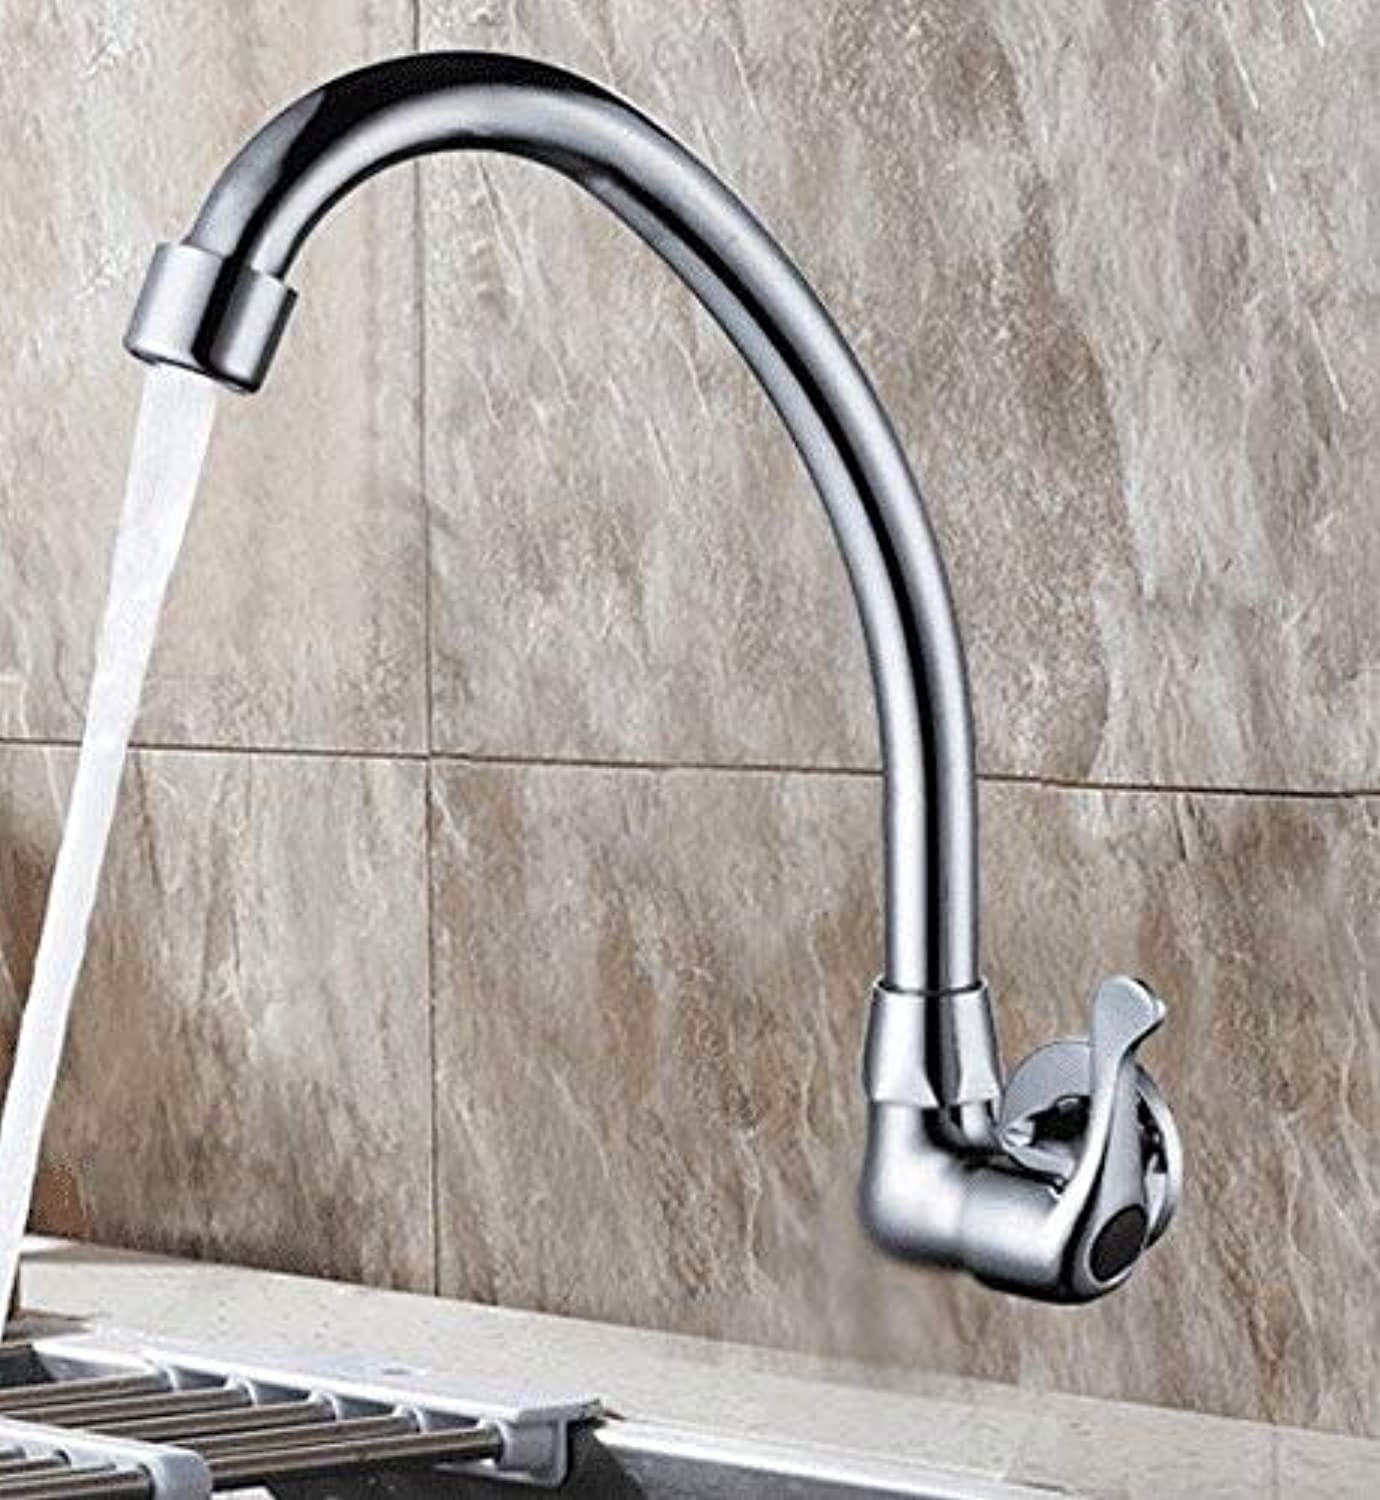 Oudan Sink Taps kitchen copper redating Single cold Into the wall Double handle ceramics Single hole